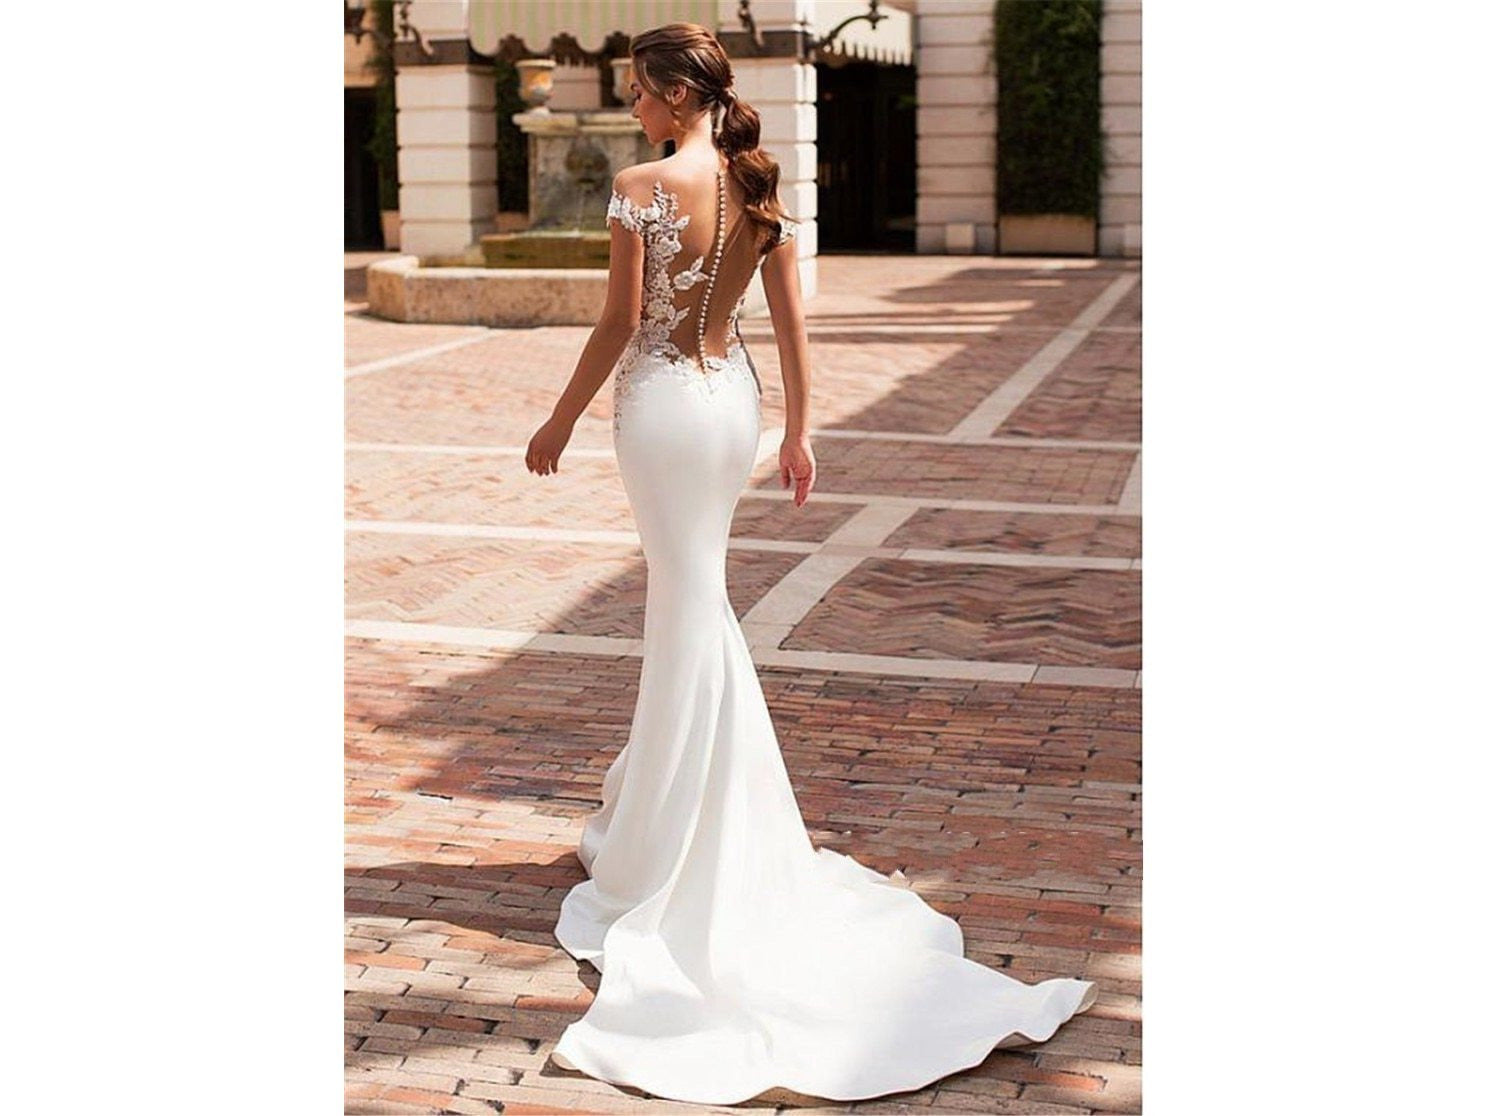 Exquisite Sheer Nude Appliques Mermaid Satin Dress Cap Sleeves See Through Bridal Gown